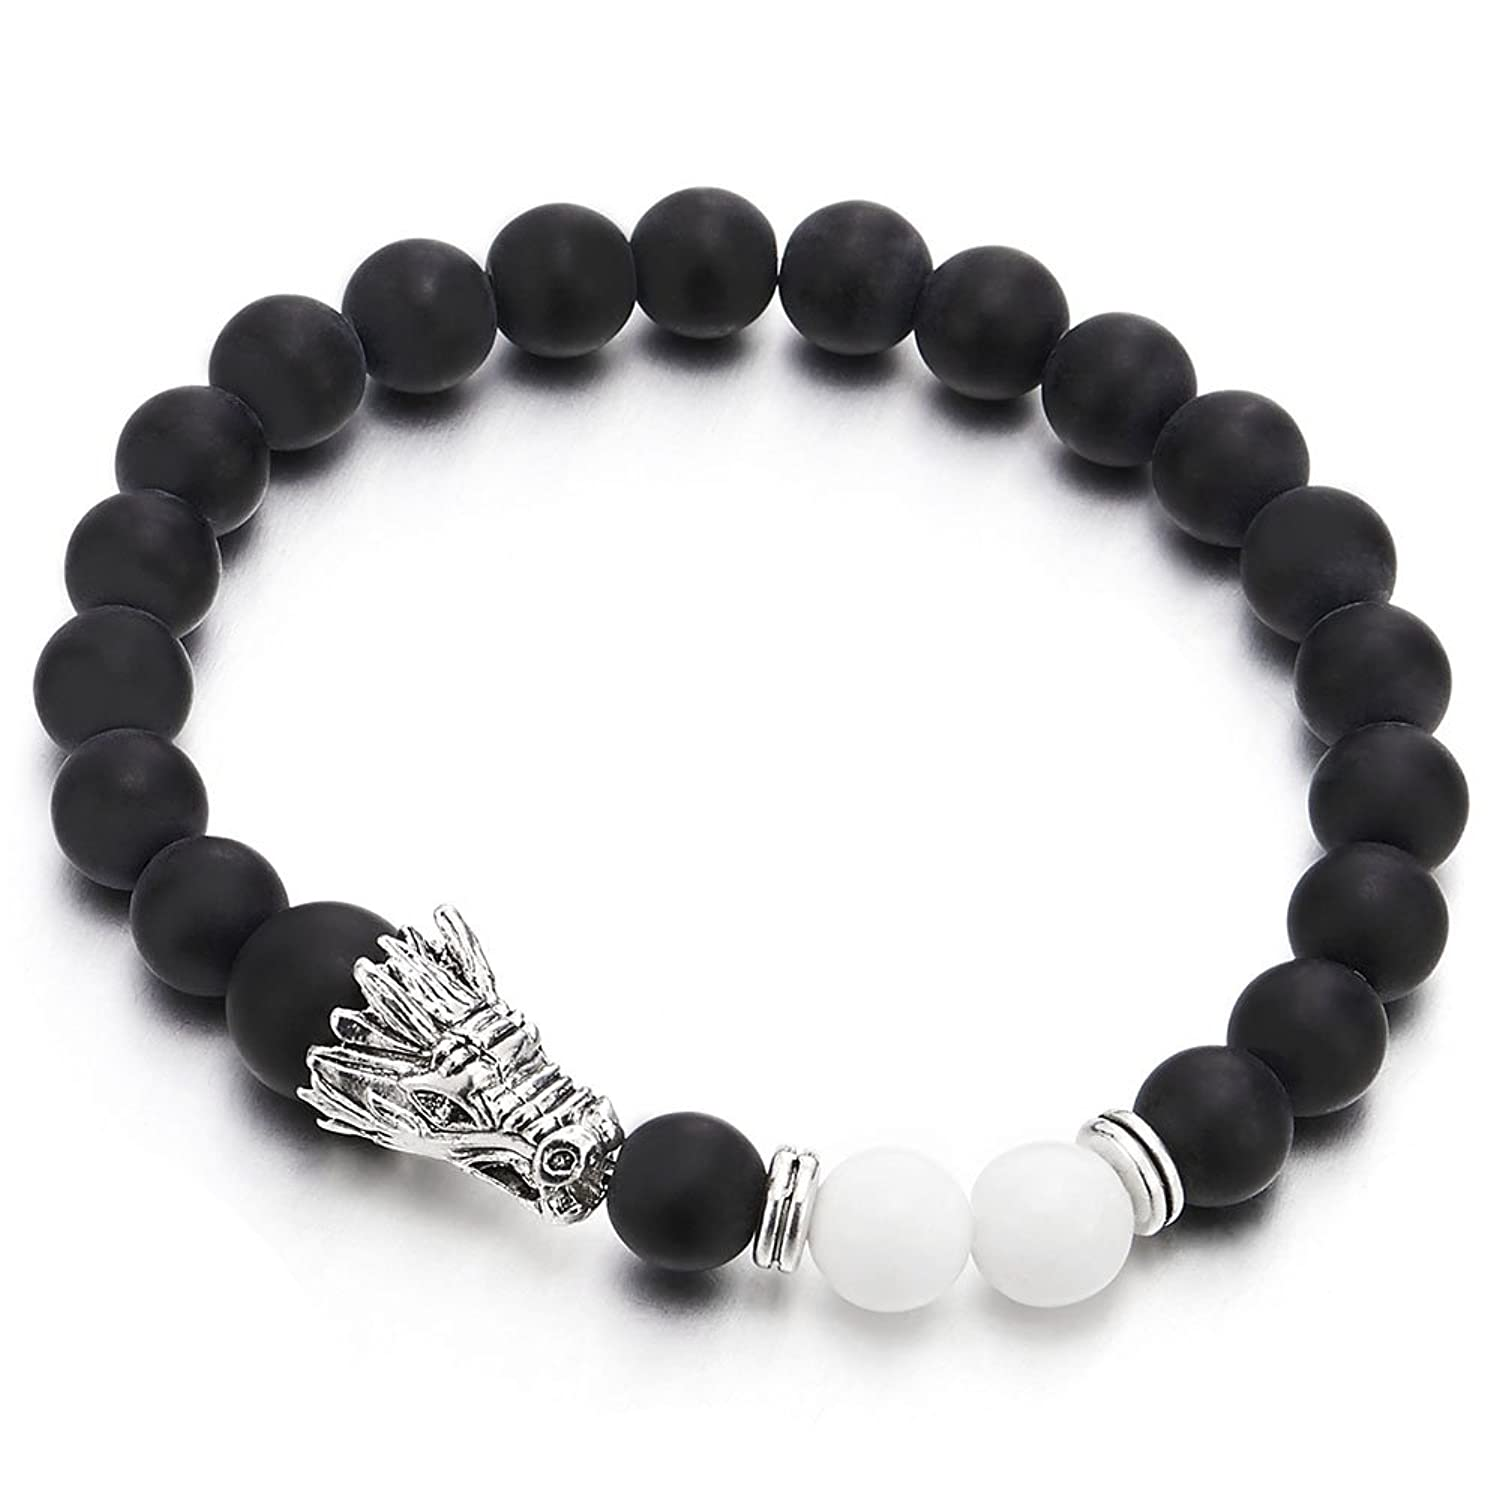 8MM Matt Black Onyx Beads Mens Wome Stretchable Bangle Bracelet with Dragon Head and White Beads Charm